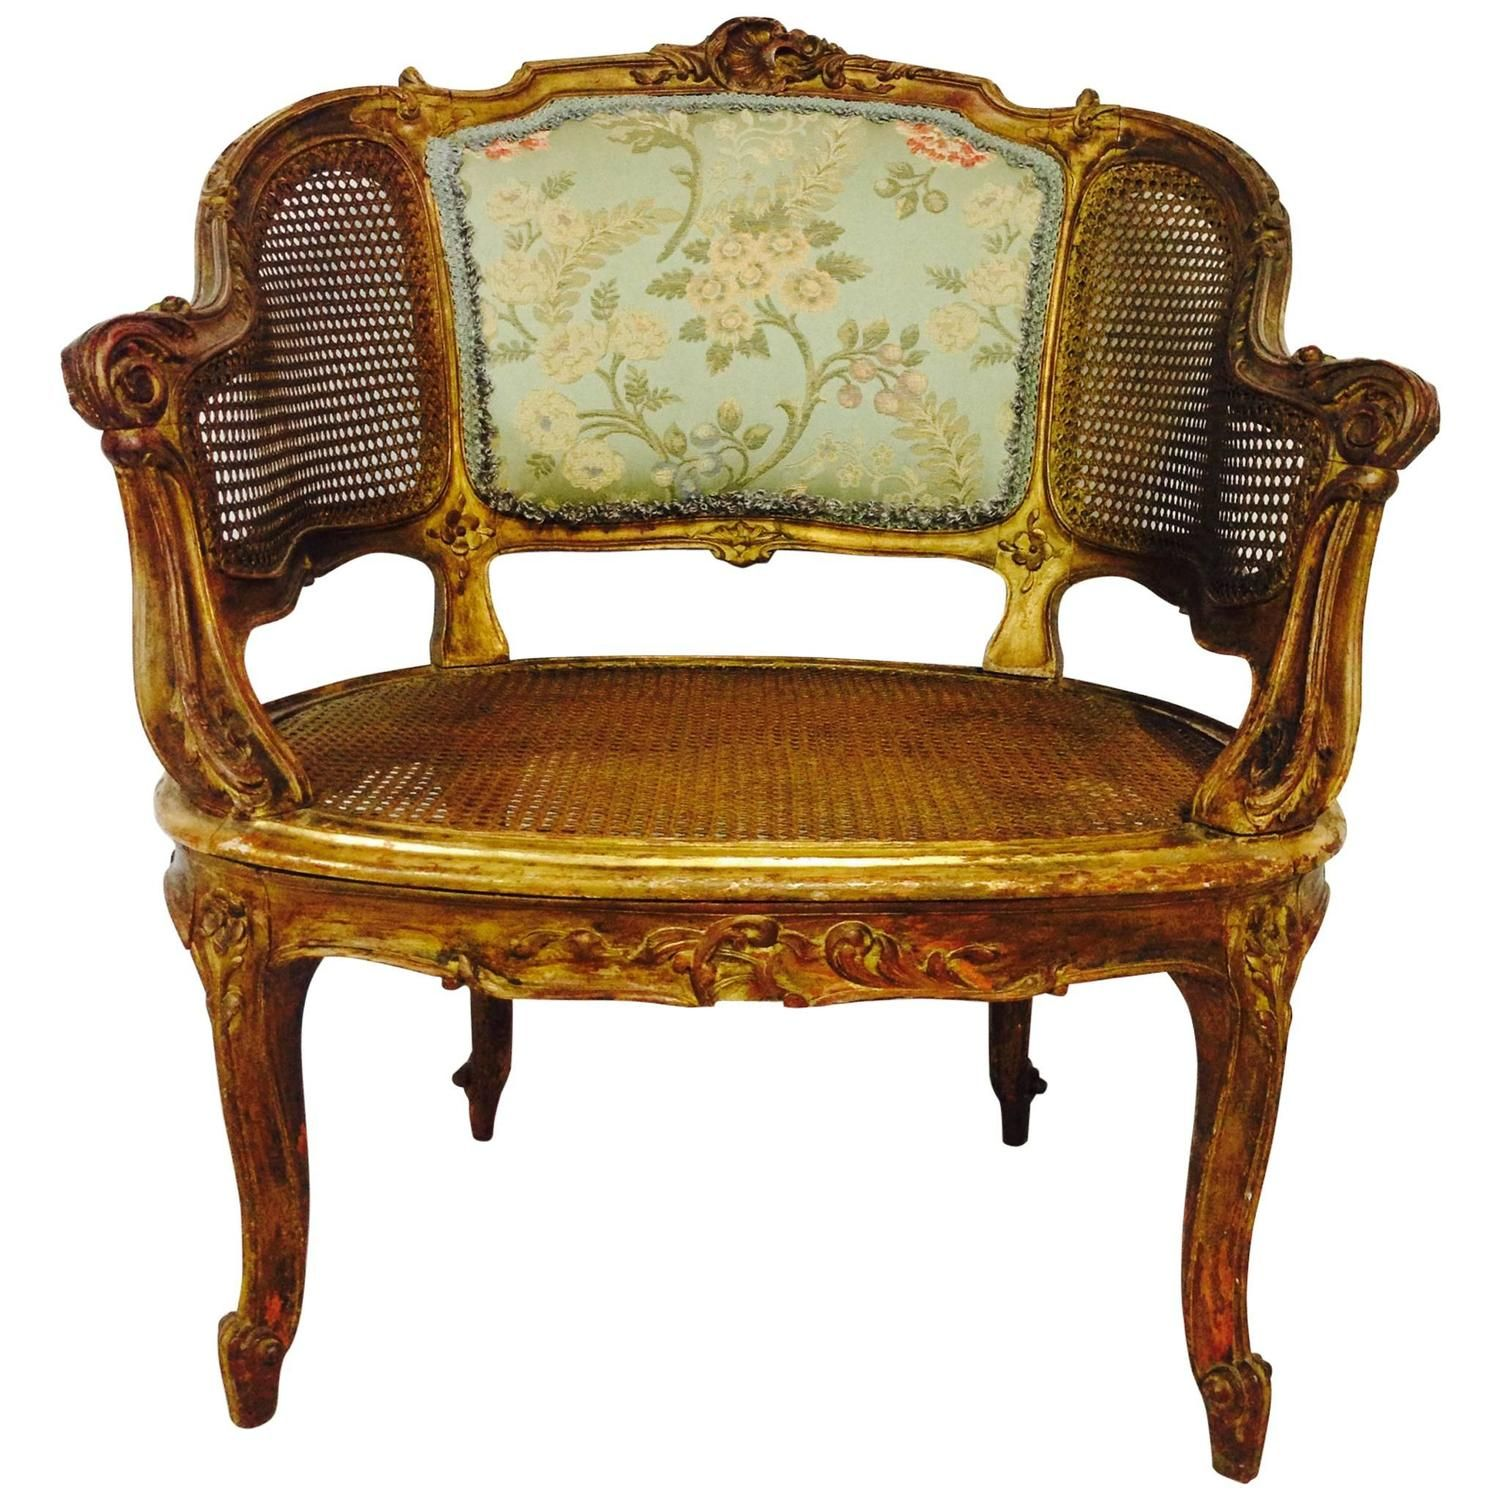 Antique Louis XV-Style French Giltwood Cane Back Chair | From a unique  collection of - French 19th Century Louis XV-Style Gilt Wood Cane Back Chair